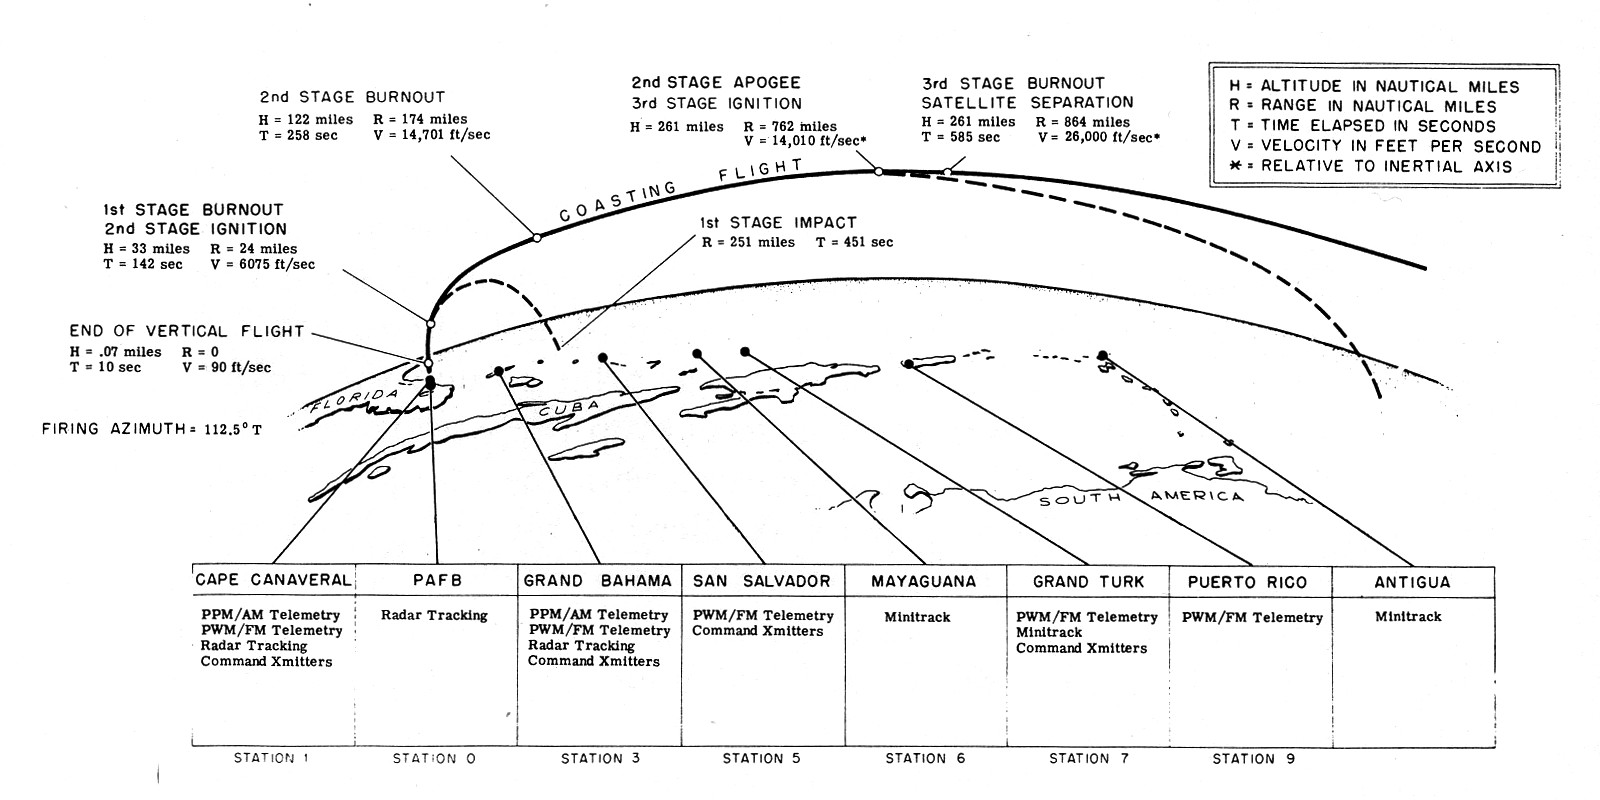 vanguard 1 the little satellite that could drew ex machina How the Internet Works Diagram this diagram shows the ascent trajectory of an orbital vanguard mission with the various downrange tracking stations indicated click on image to enlarge